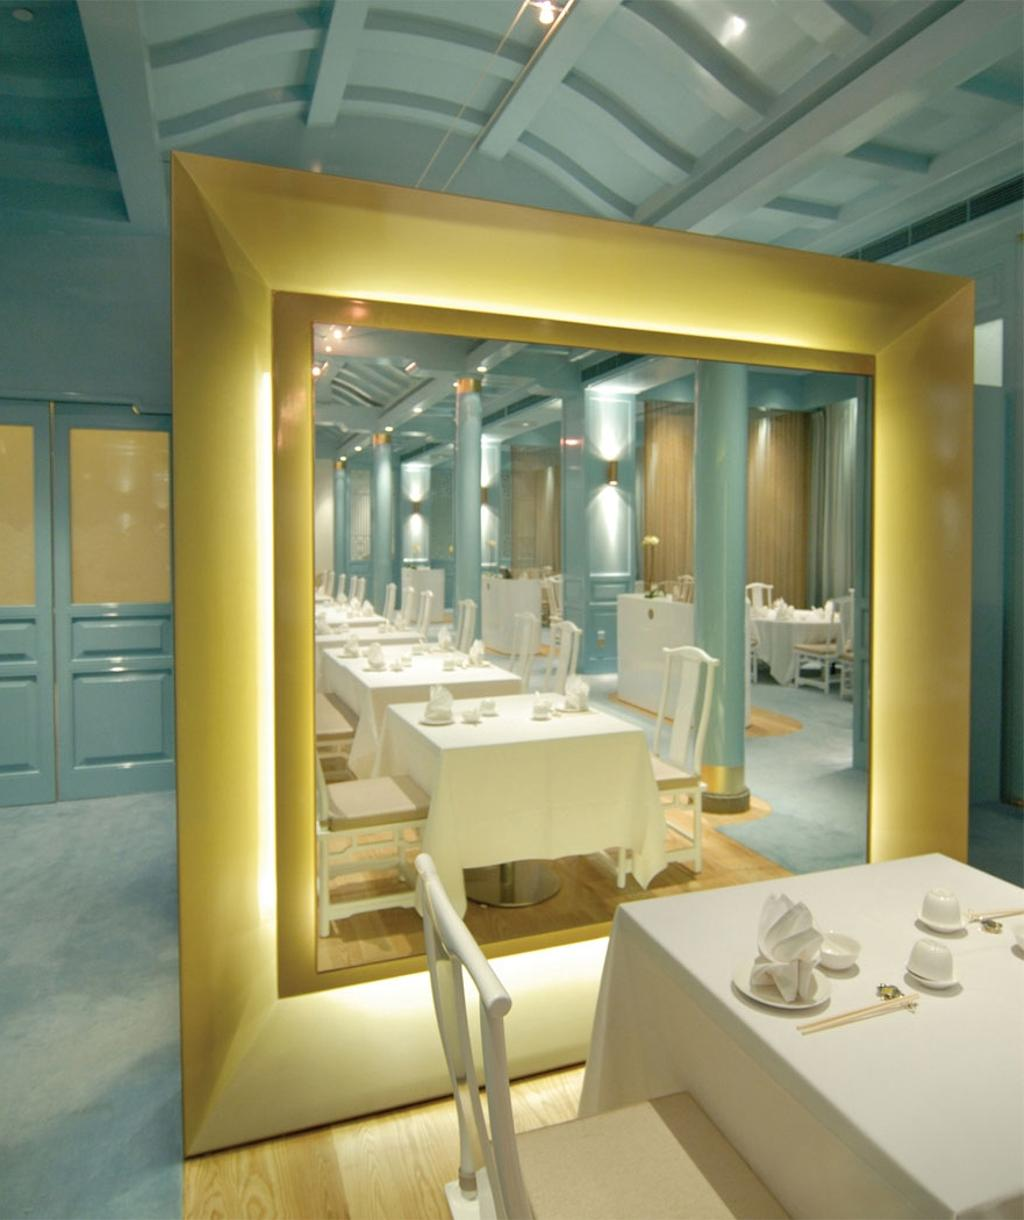 Royal China Restaurant, Commercial, Architect, Ministry of Design, Vintage, Sink, Indoors, Interior Design